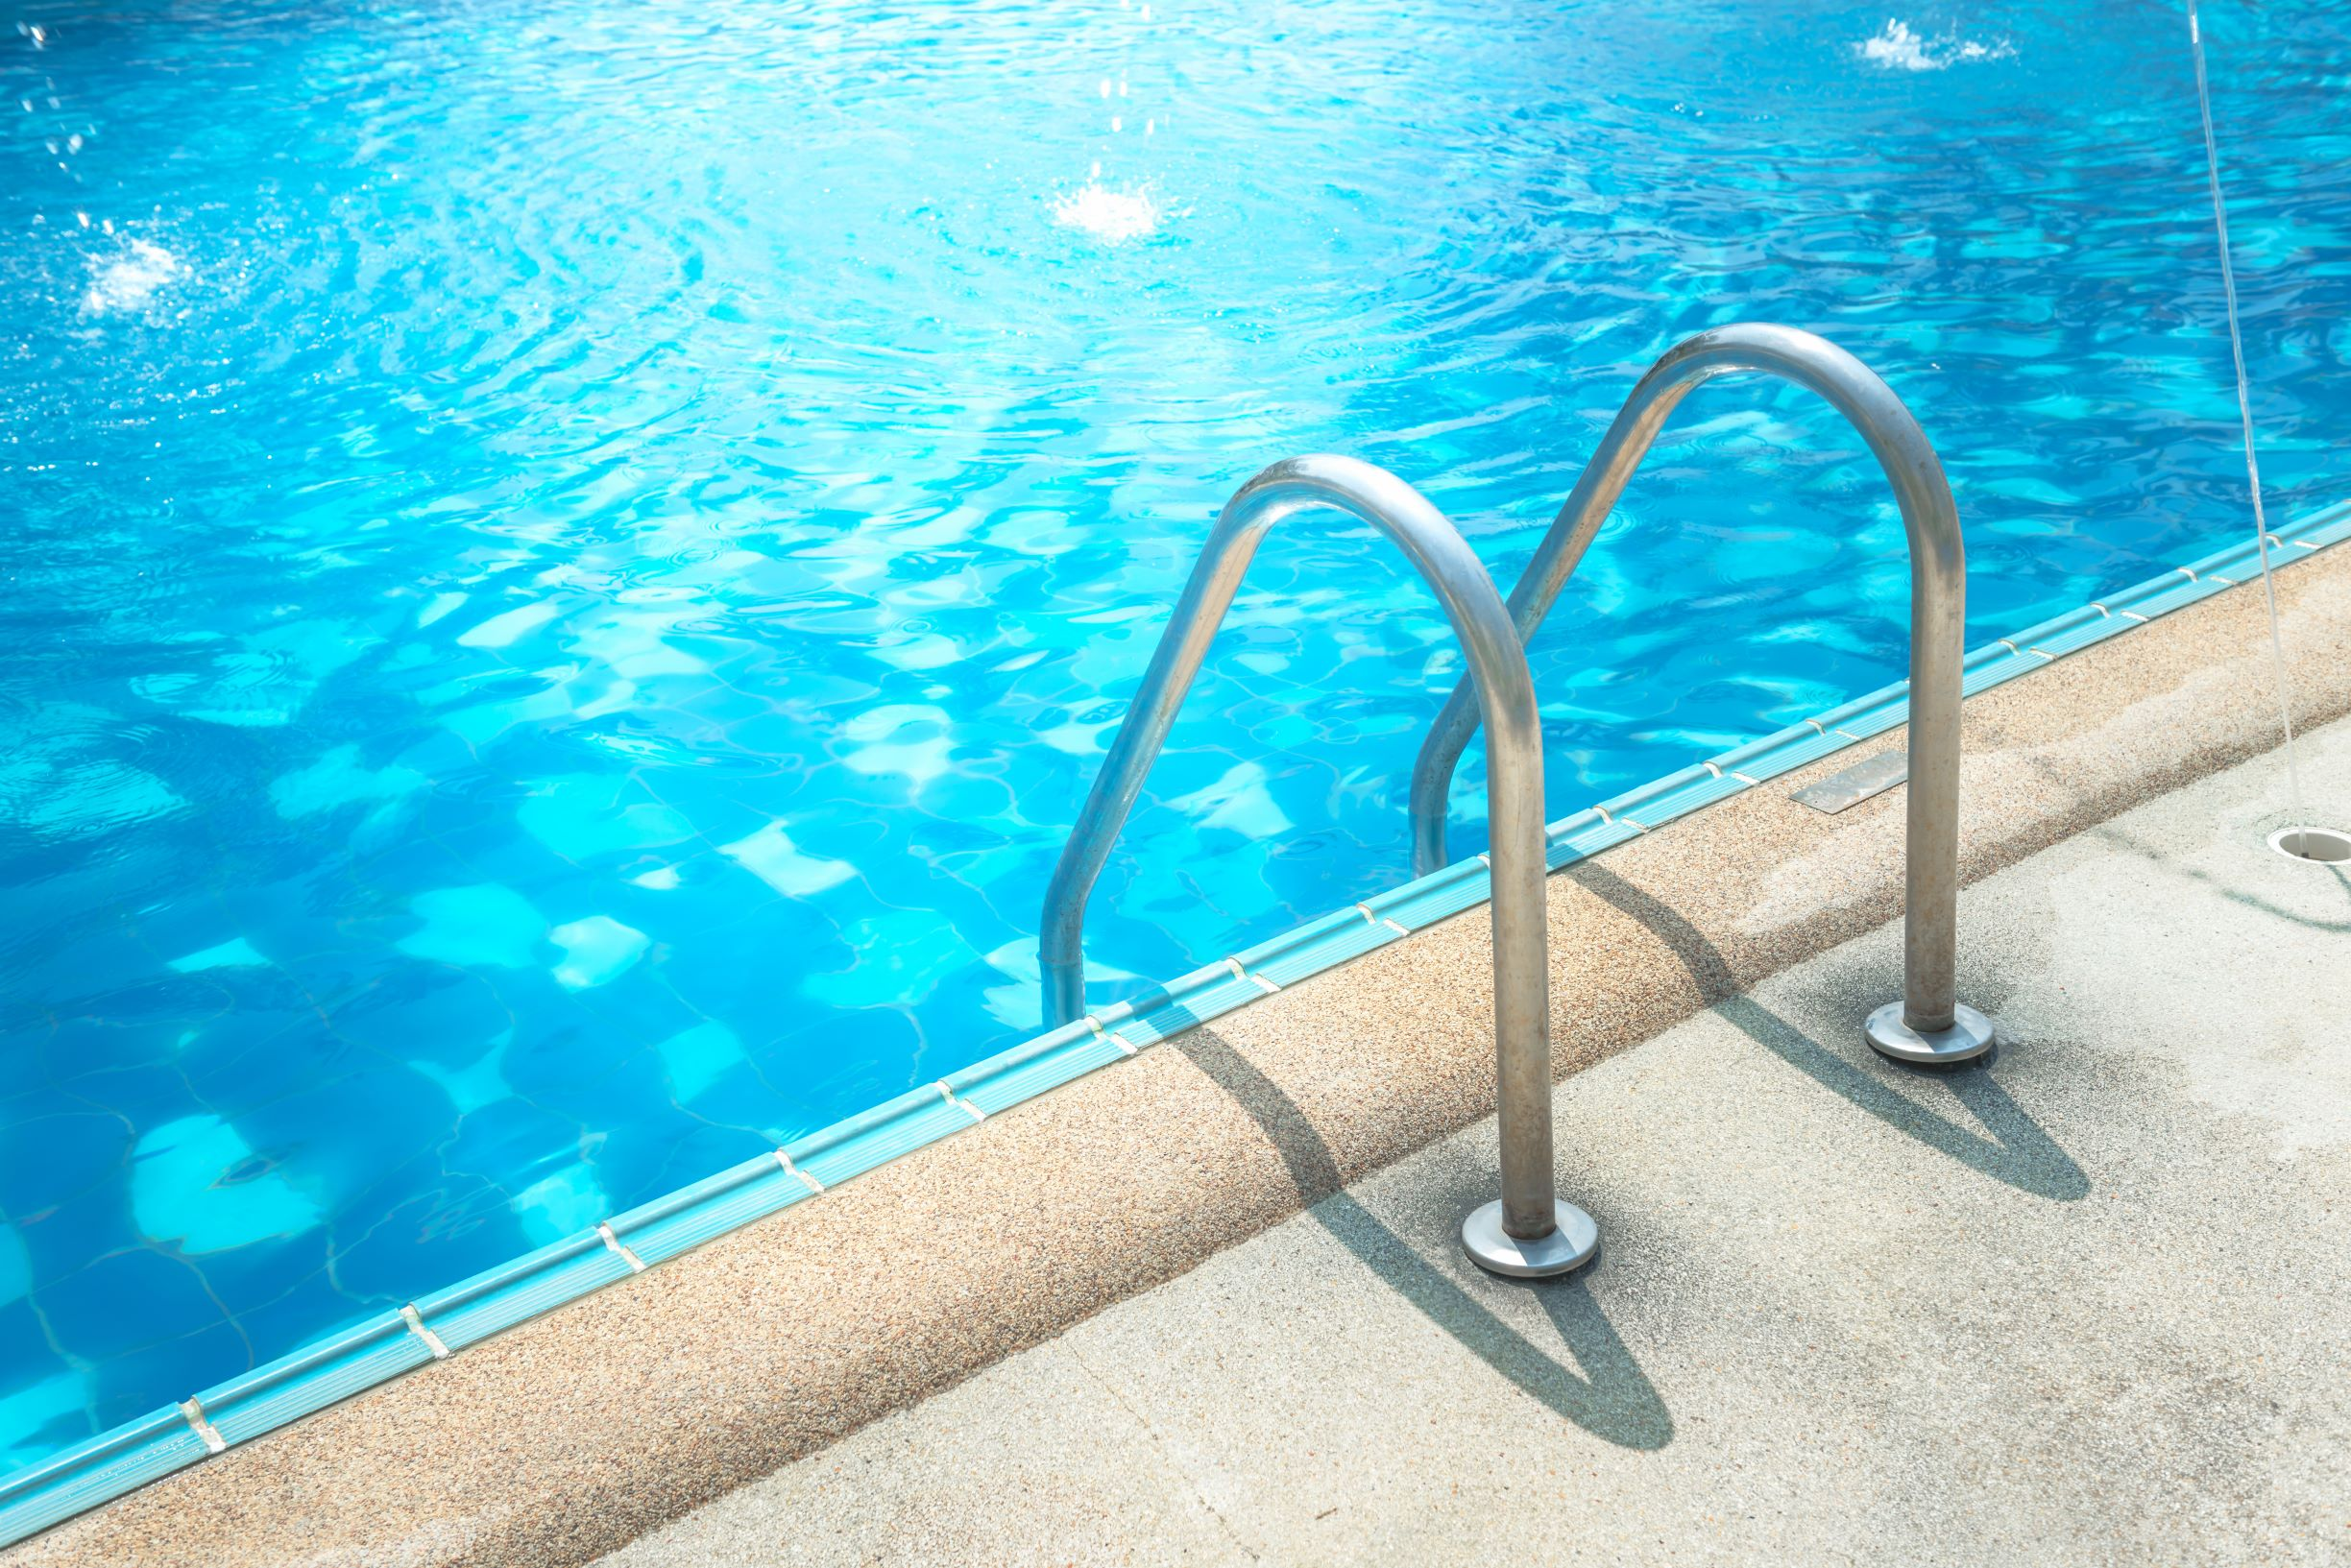 How Does The Summer Heat Impact Your Swimming Pool?